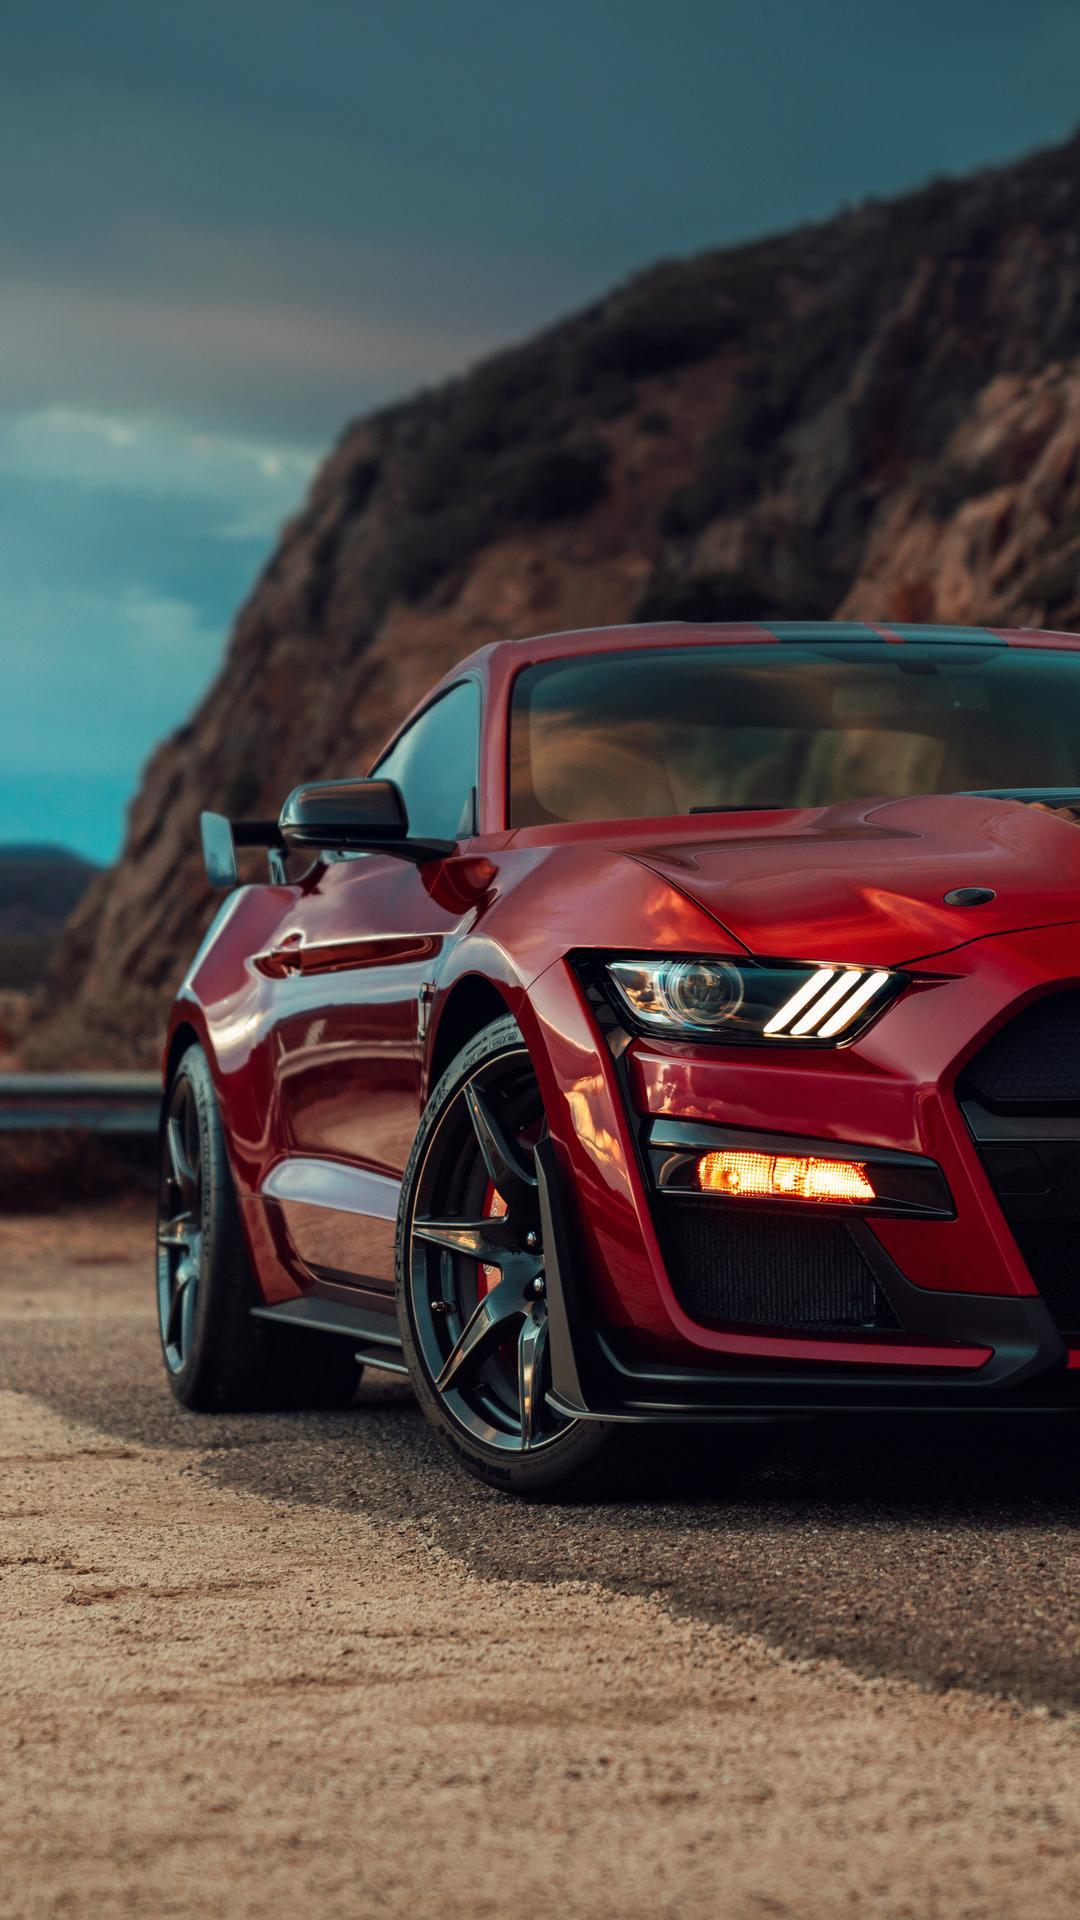 Mustang Wallpapers For Android Apk Download